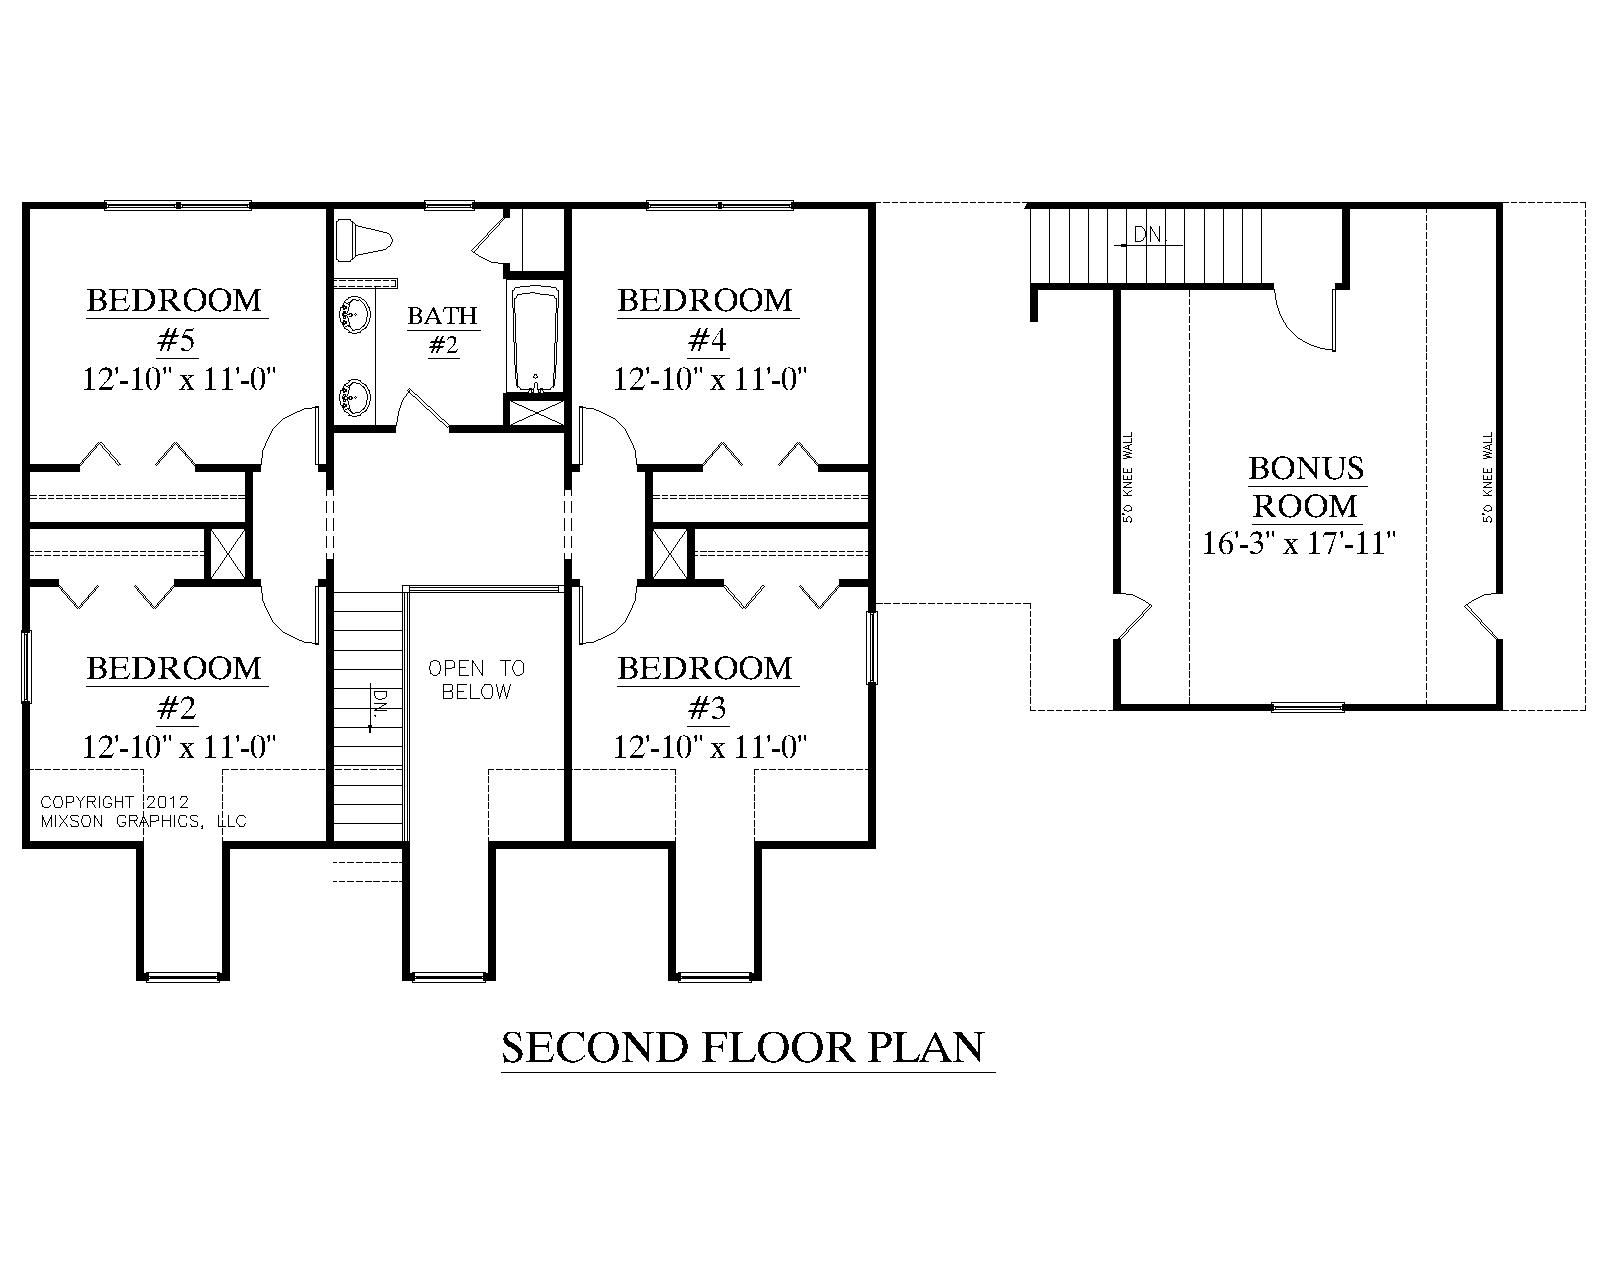 House plan 2341 a montgomery a second floor plan 1 and 1 2 story floor plans